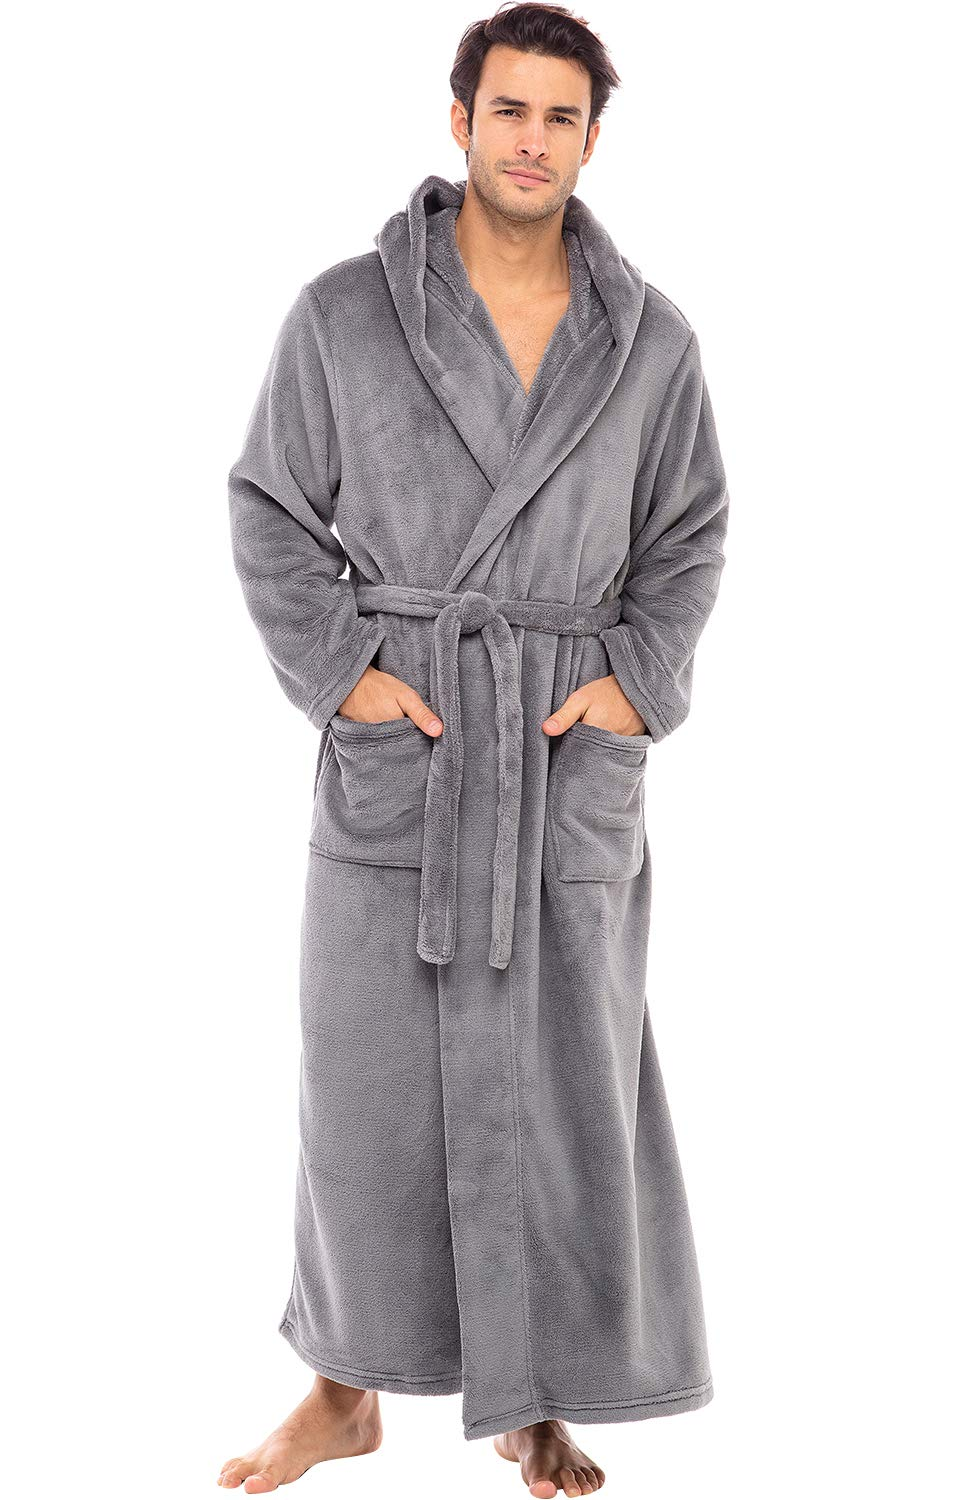 Image of Full Length Hooded Flannel Bath Robes for Men - See More Colors